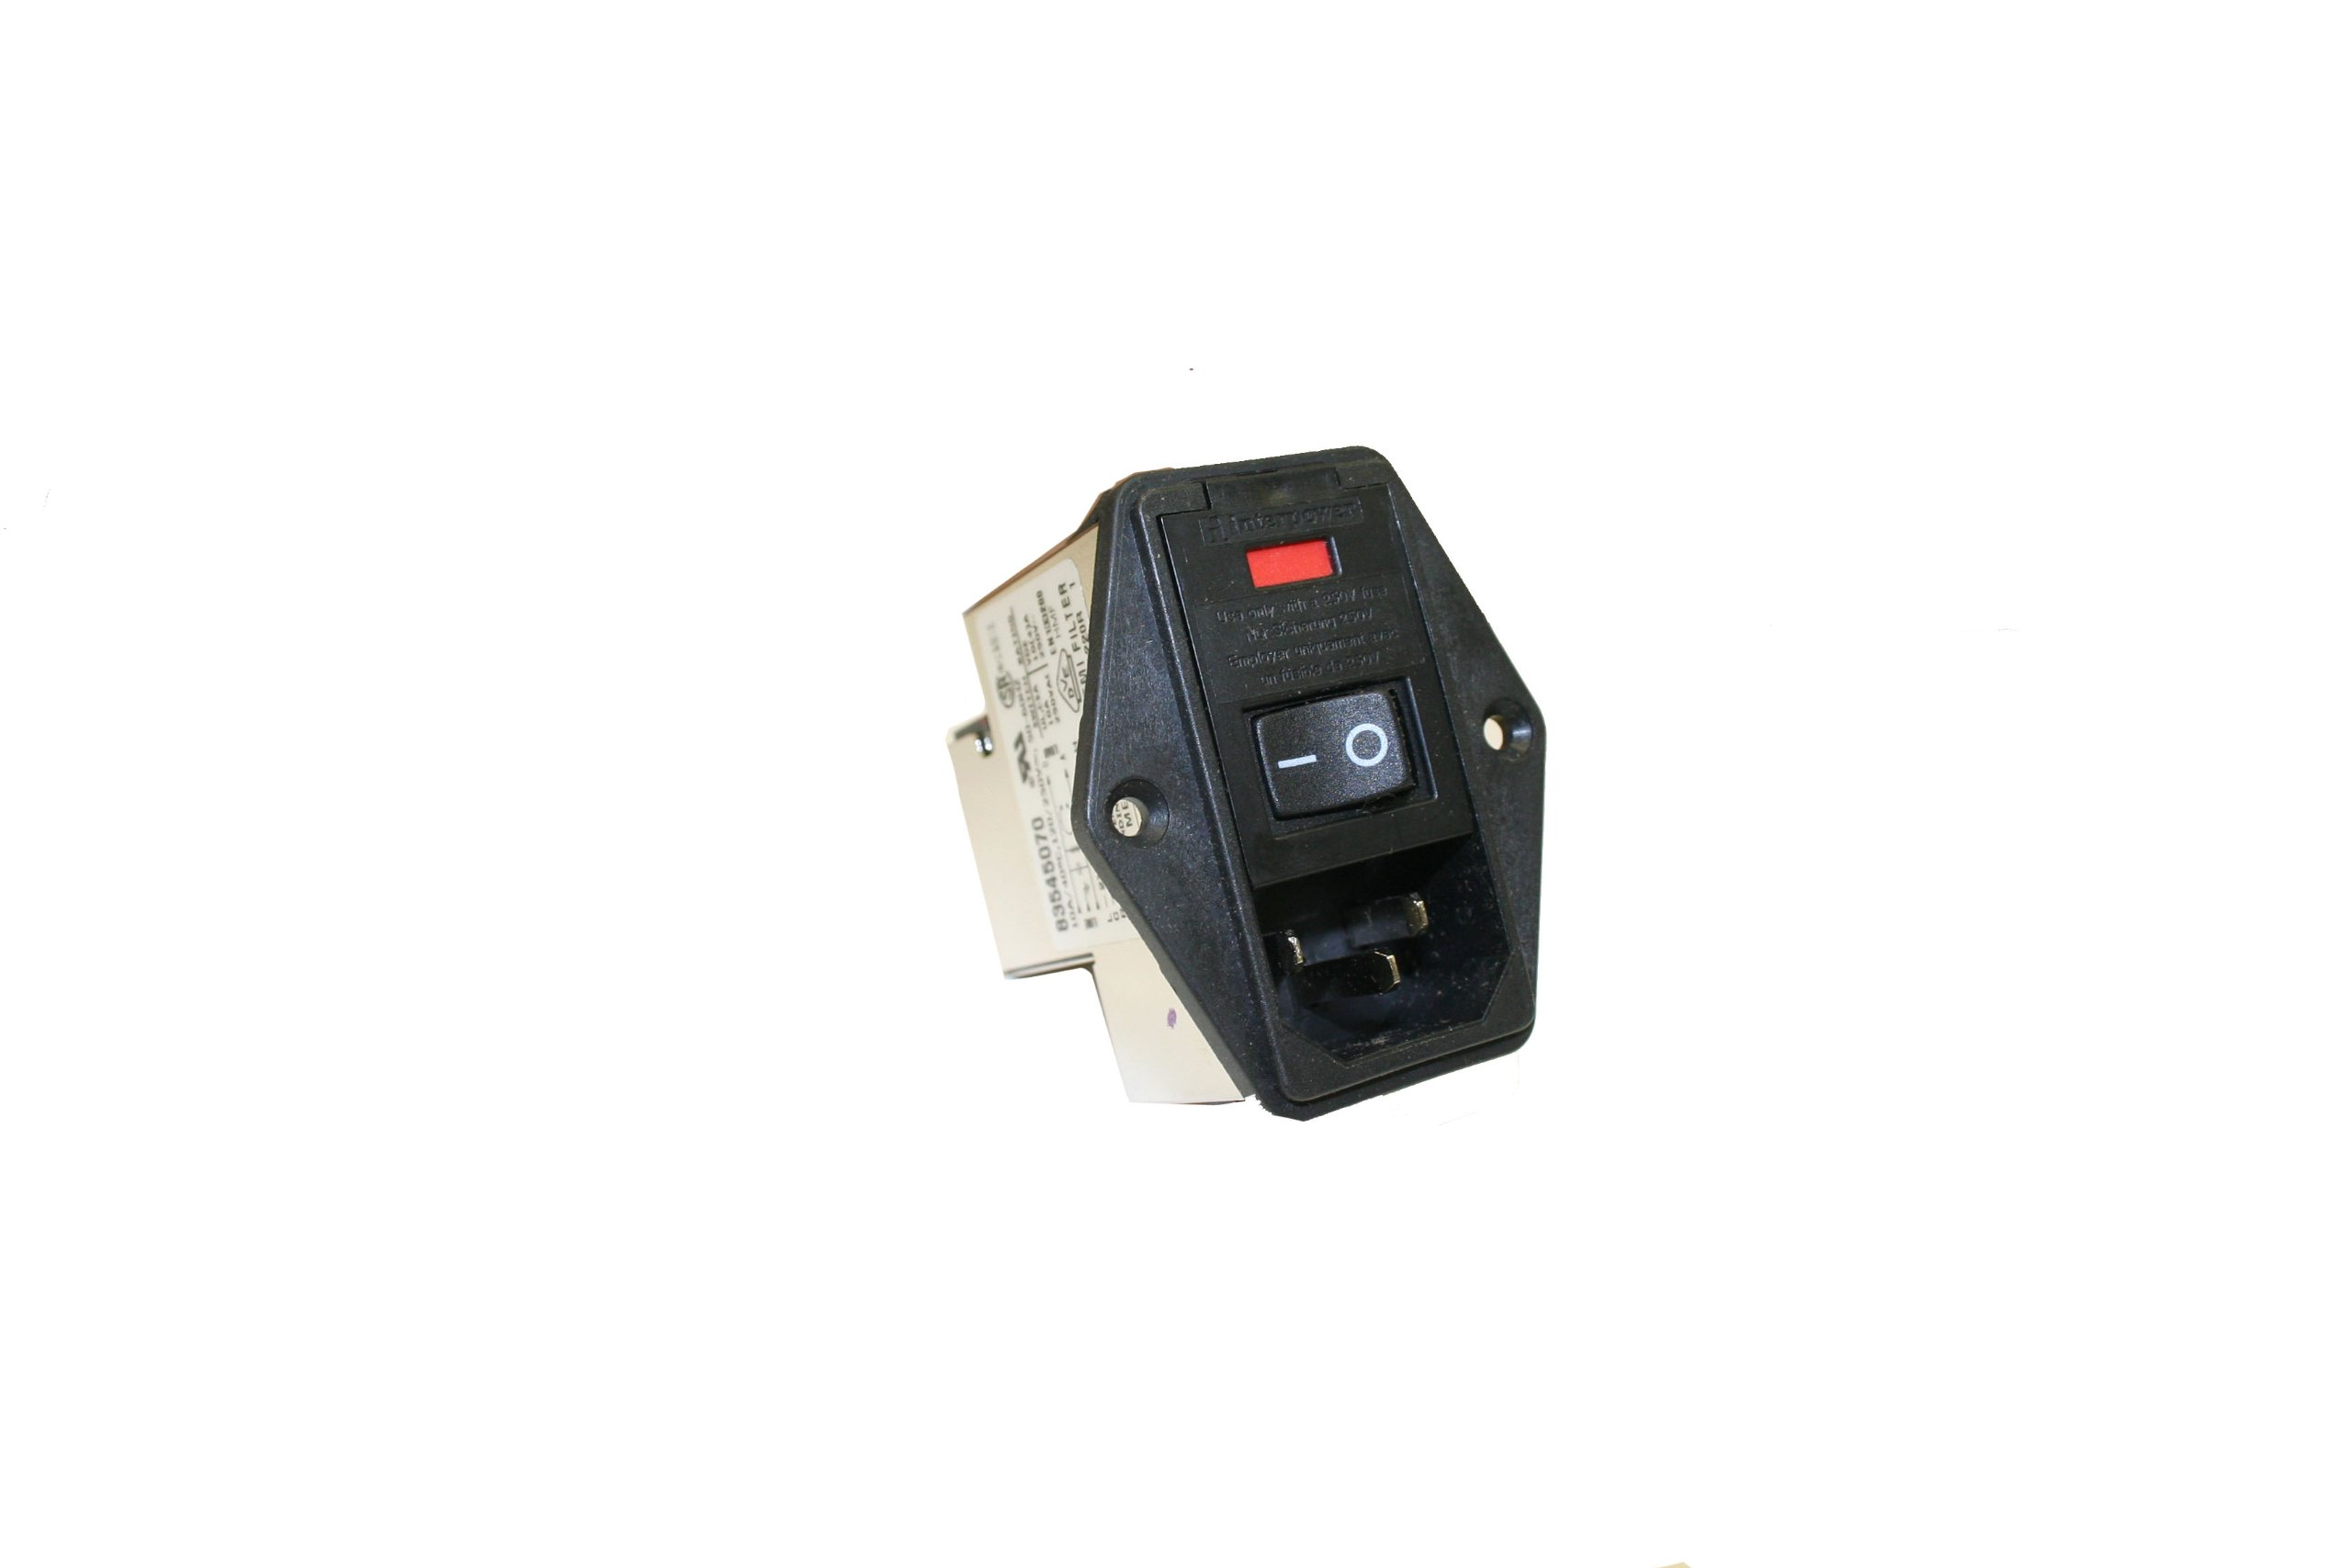 Interpower 83545070 Four Function Medical Grade Module, C14 Inlet, Switch, Double Fused, Filter, 10A Current Rating, 120/250VAC Voltage Rating by Interpower